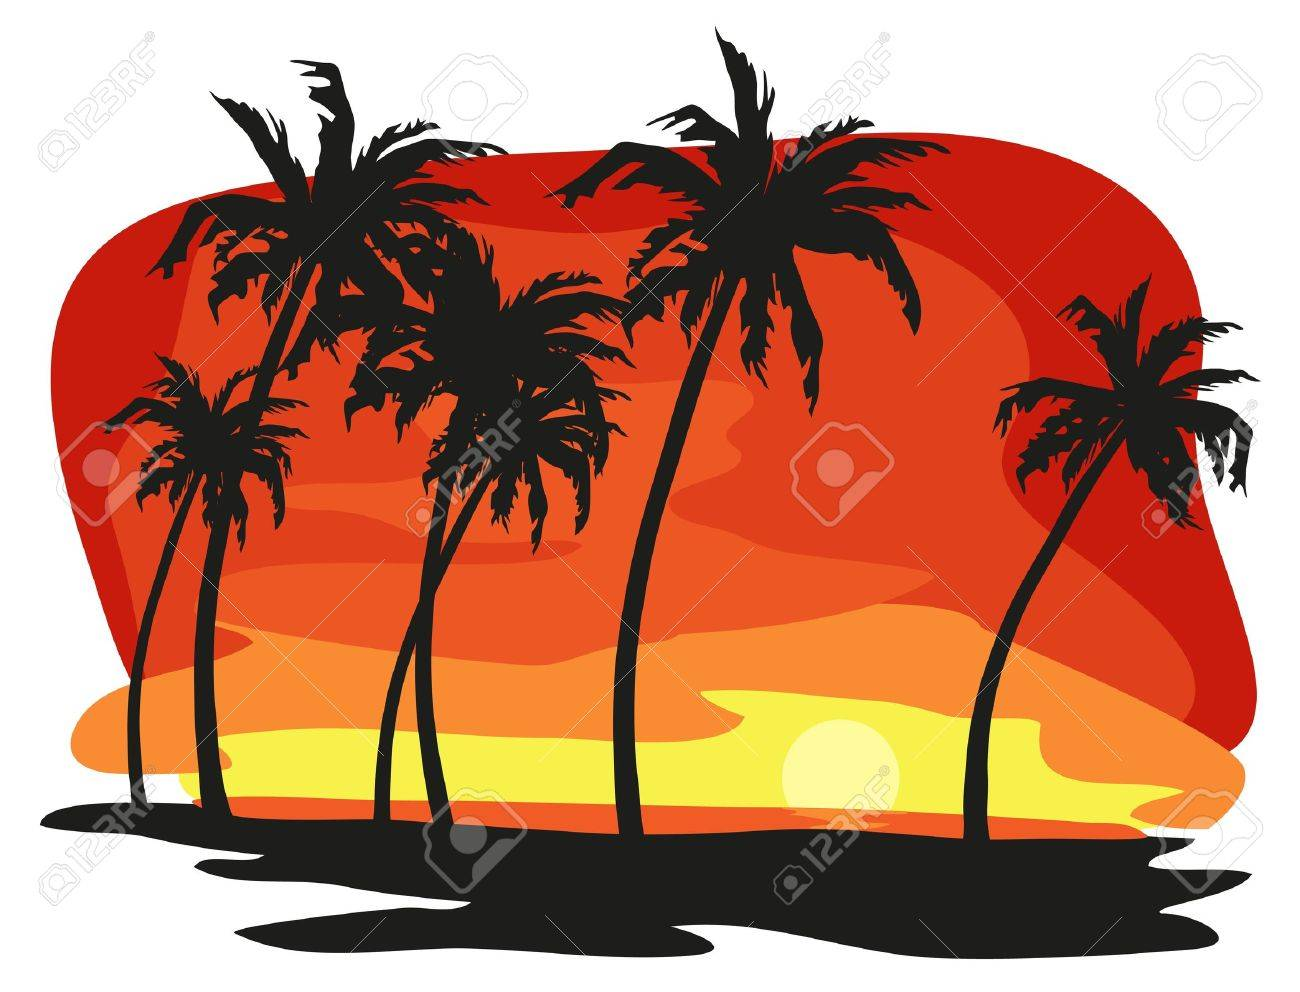 Tropical landscape illustration isolated on white background Stock Vector - 9944117